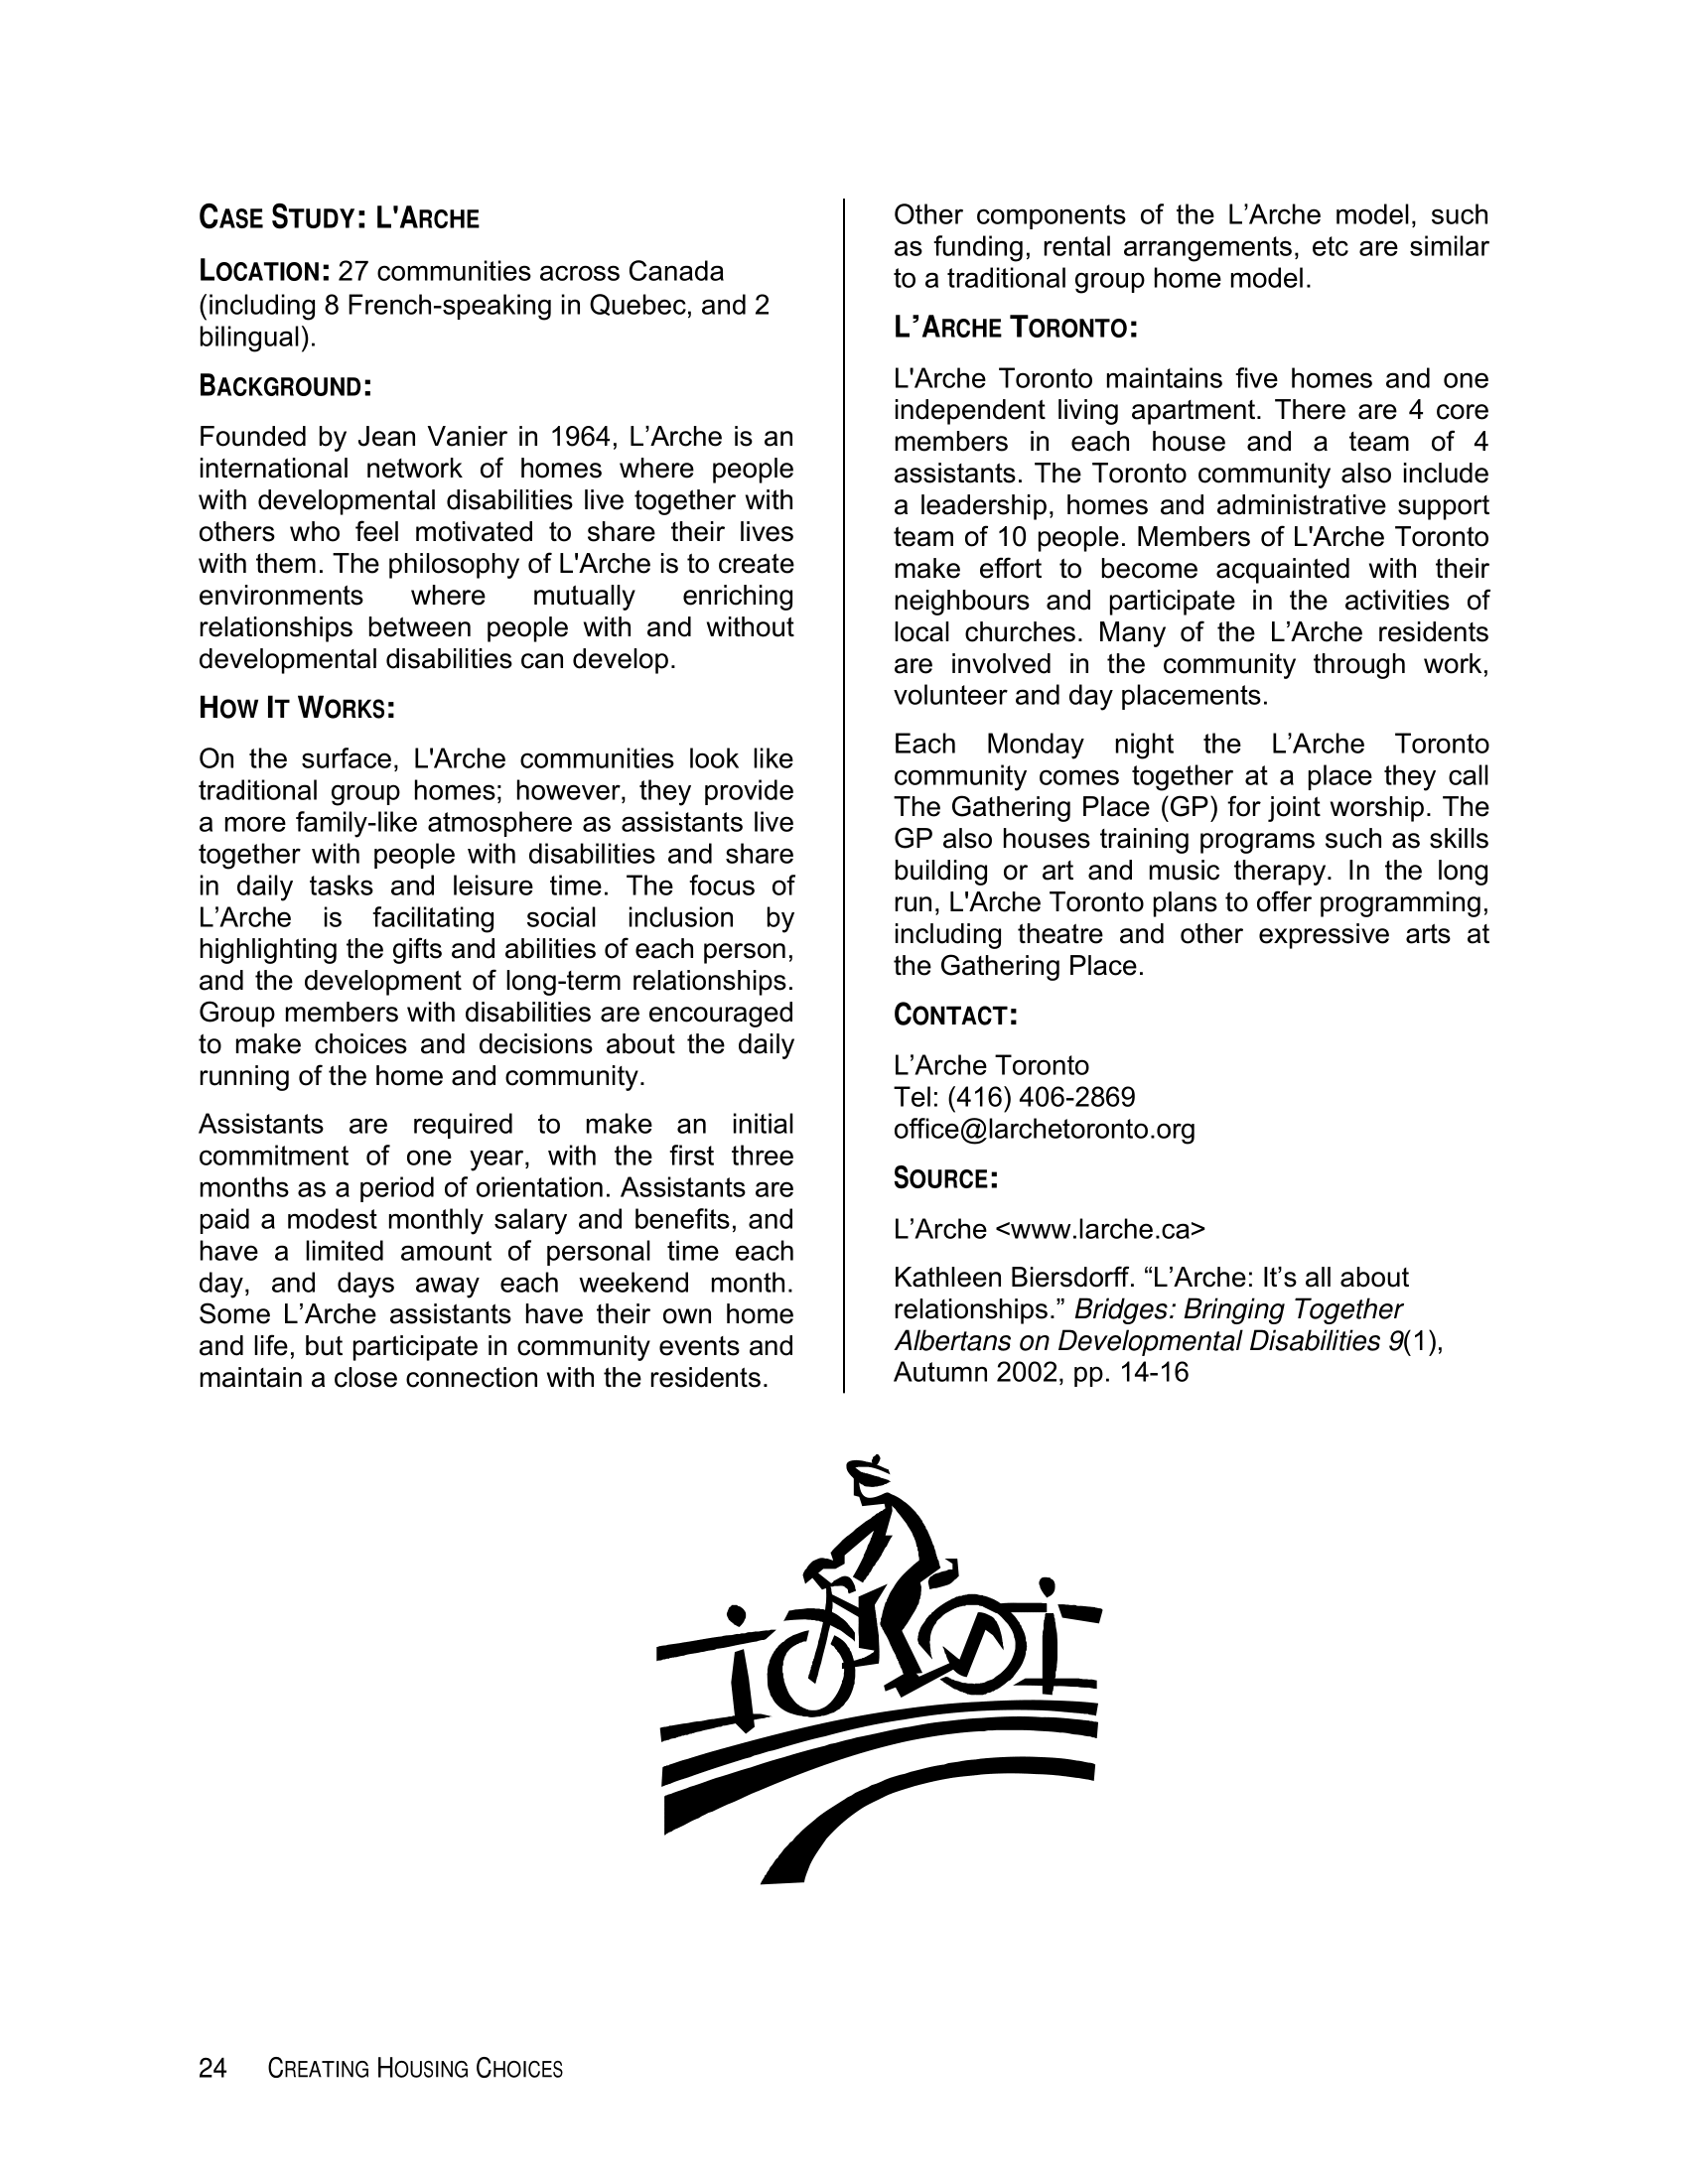 Creating Housing Choices - 2006-25.png